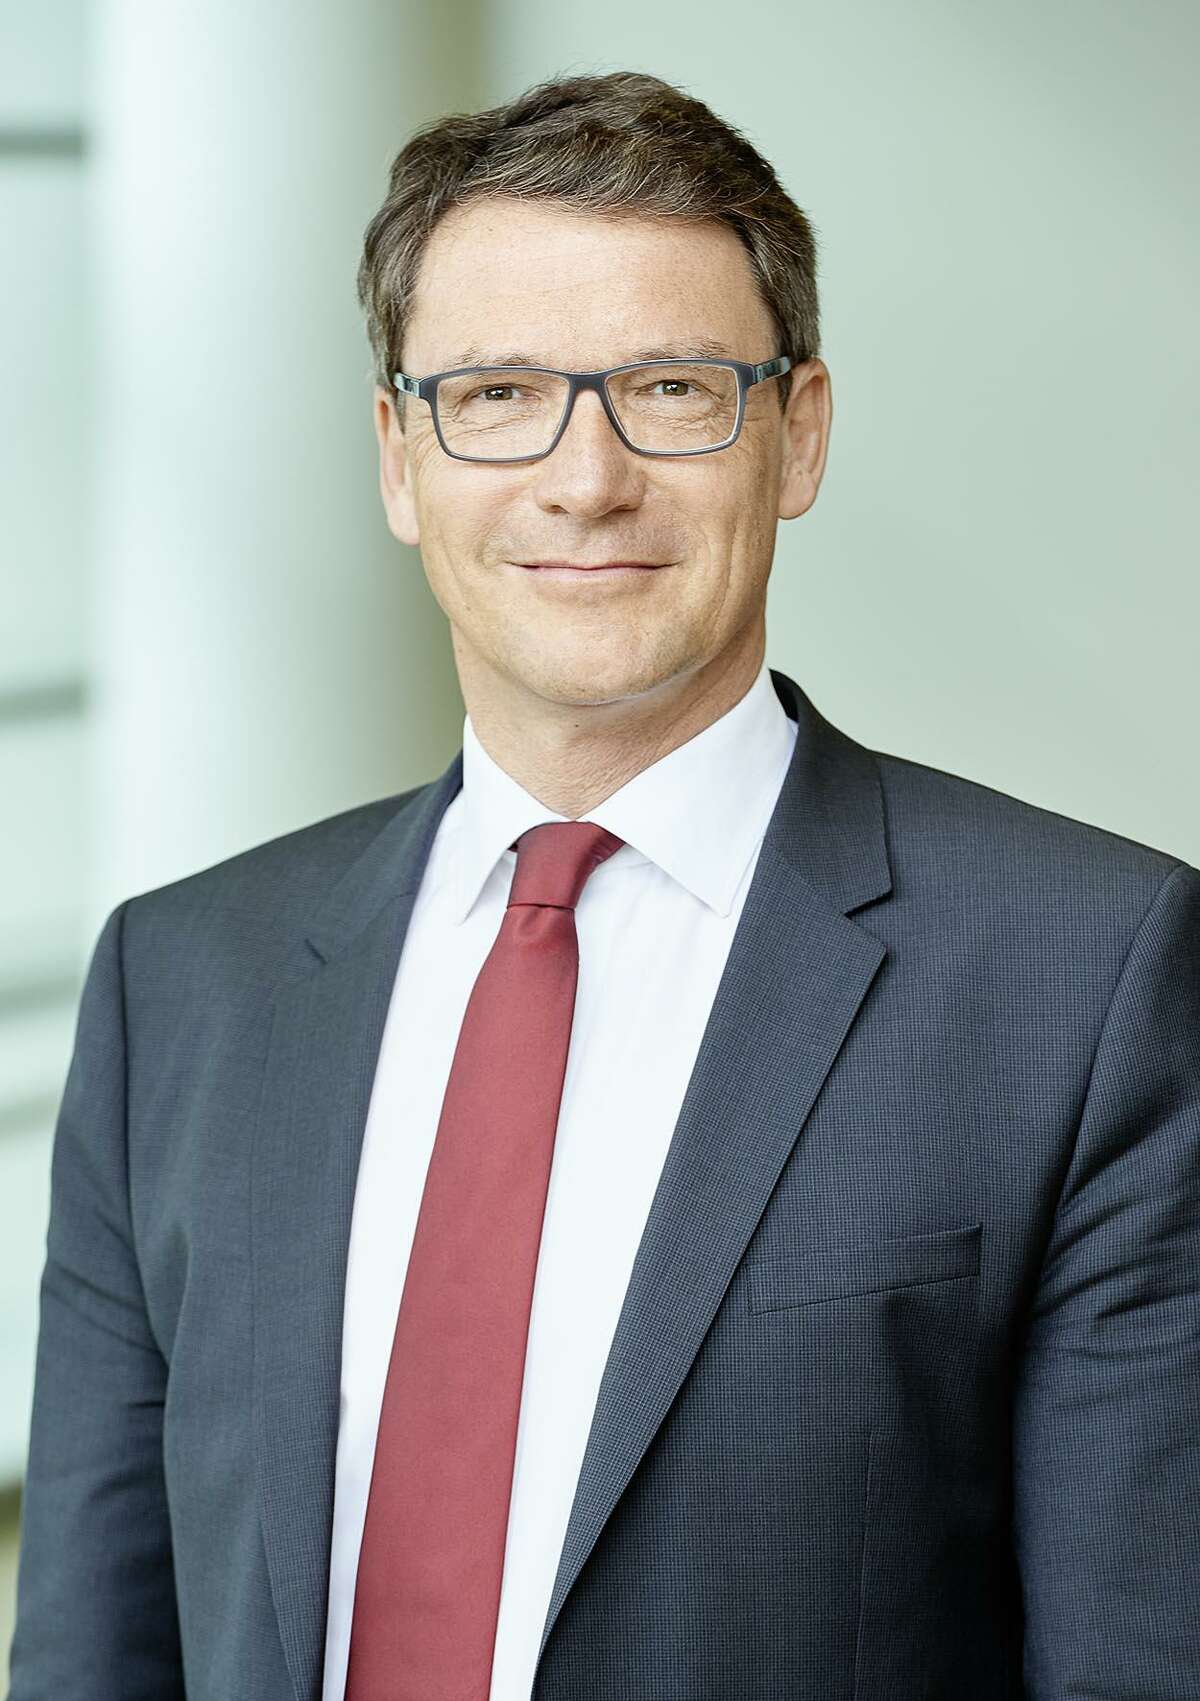 Stephan Fuesti-Molnar has been named president of Henkel's consumer goods division and regional head of its laundry and home care operations in North America.